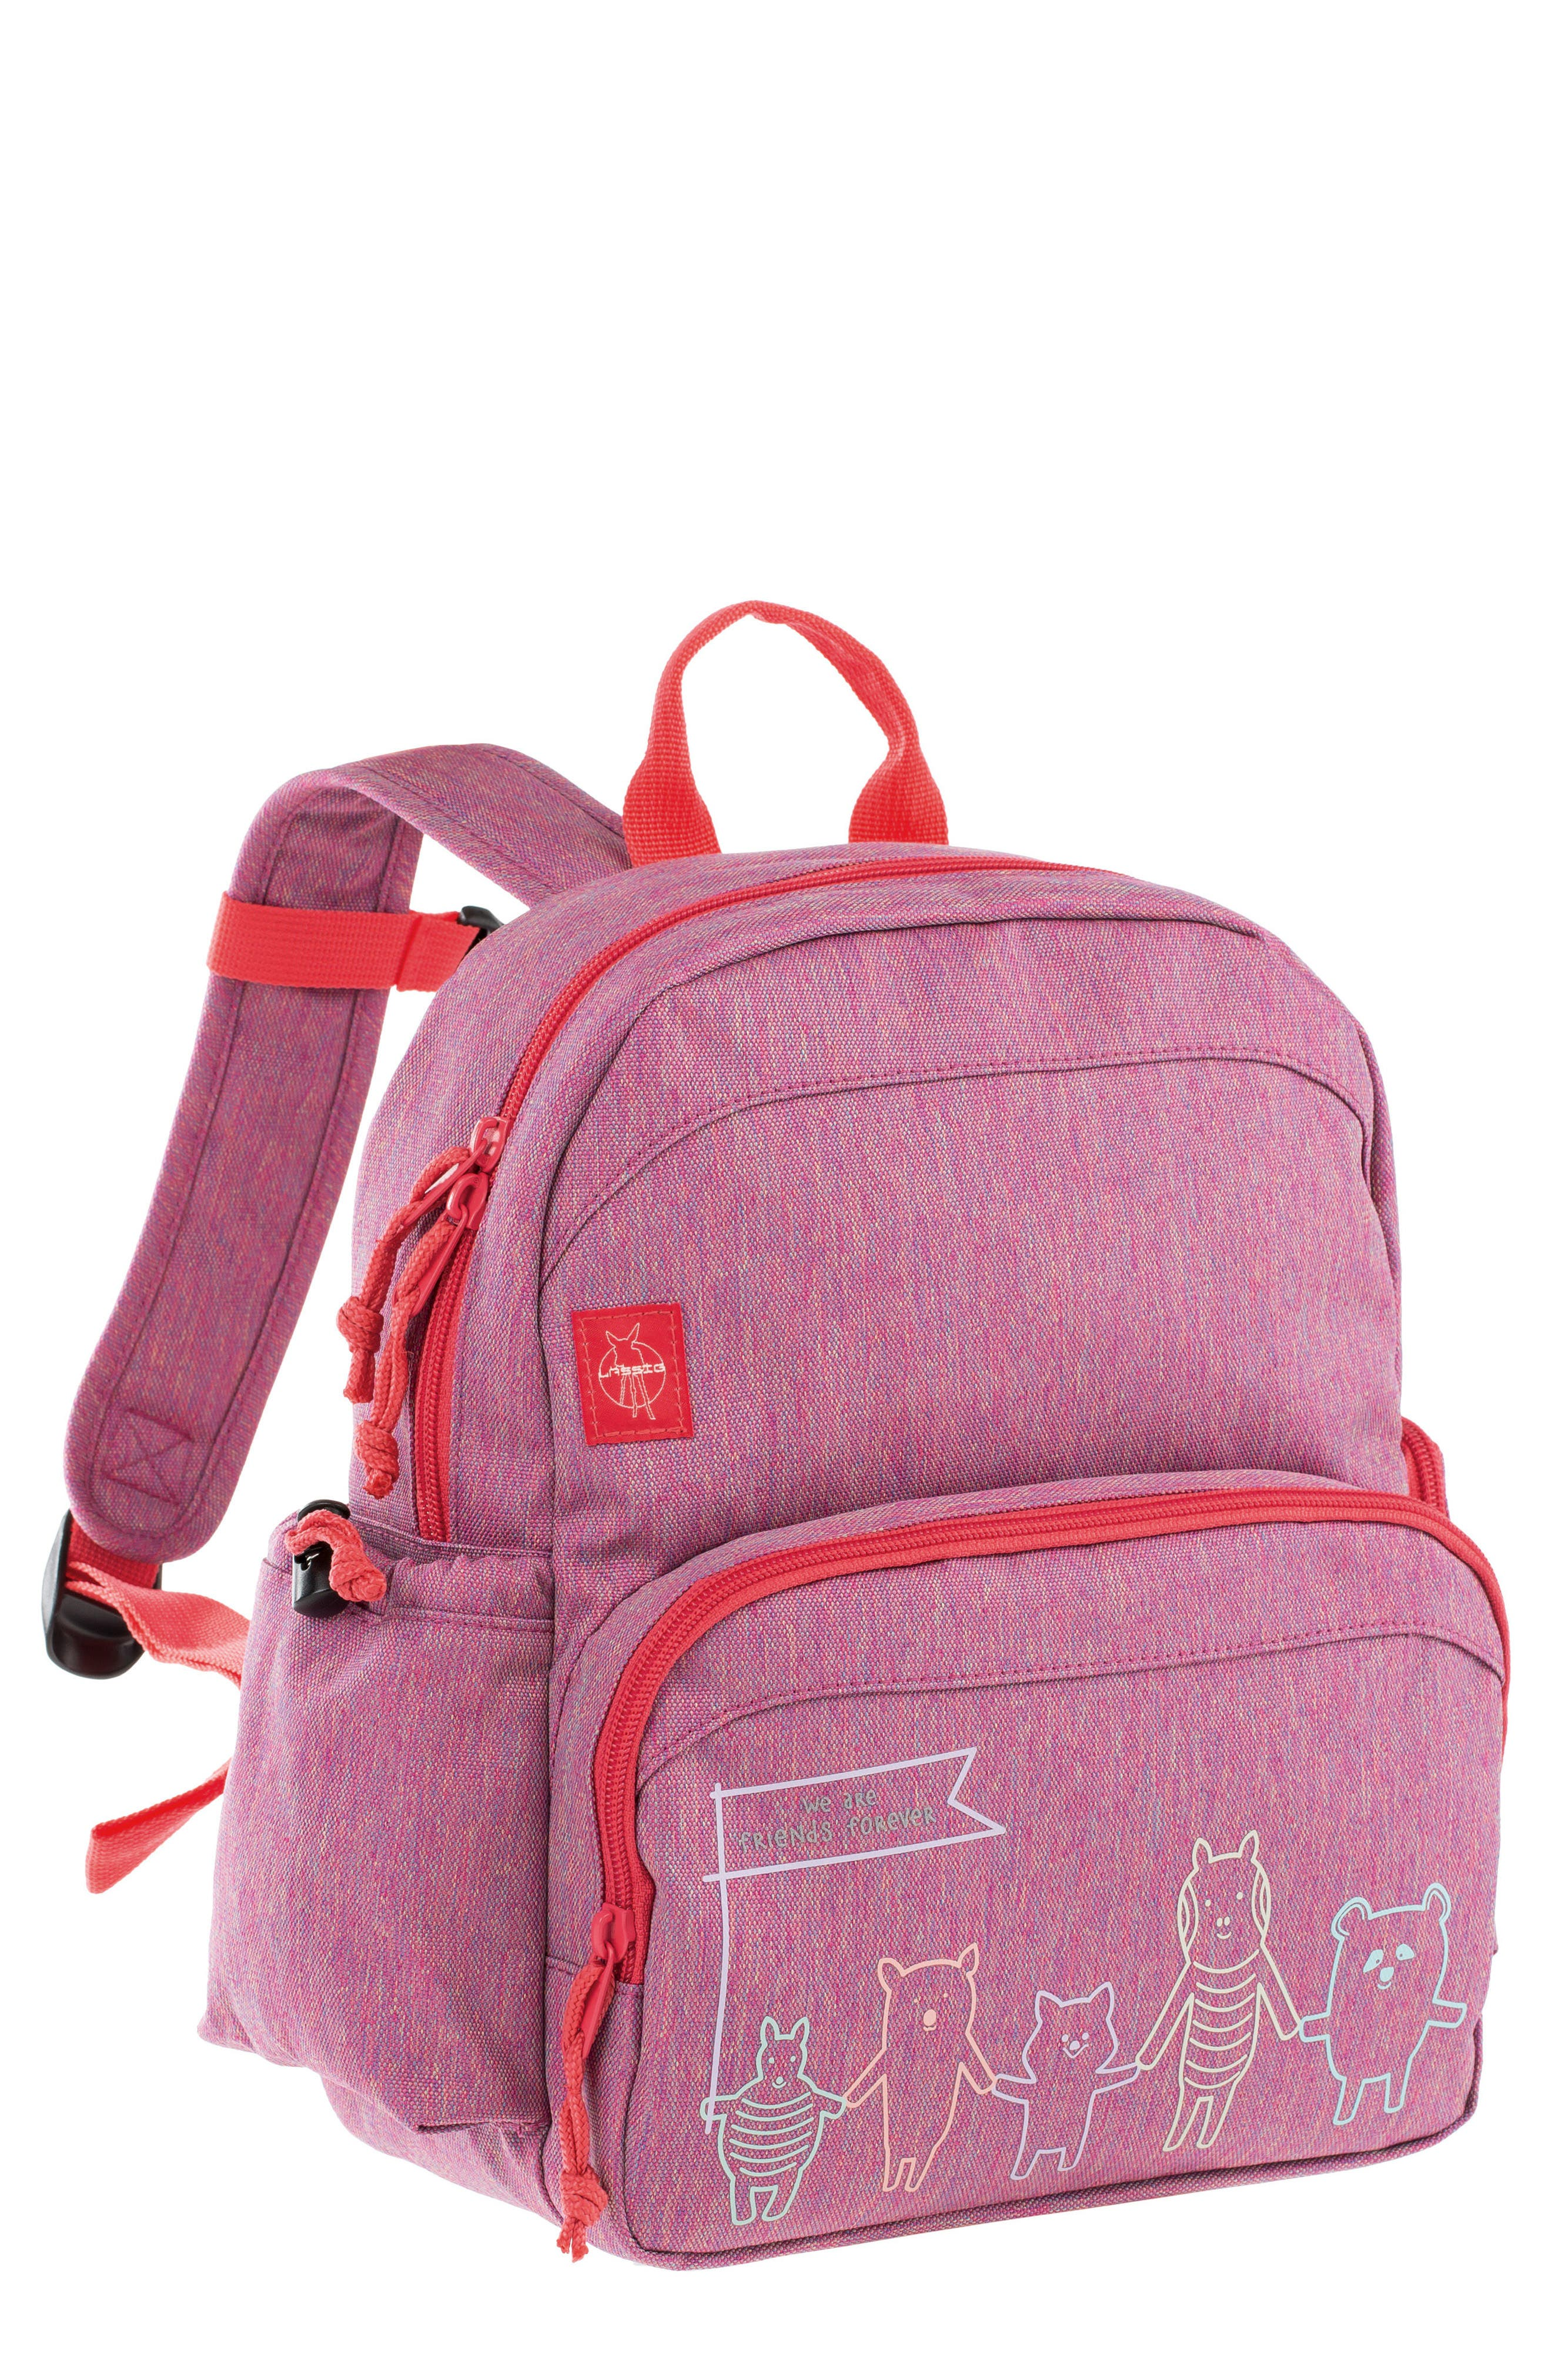 Toddler Lassig Medium About Friends Backpack - Pink